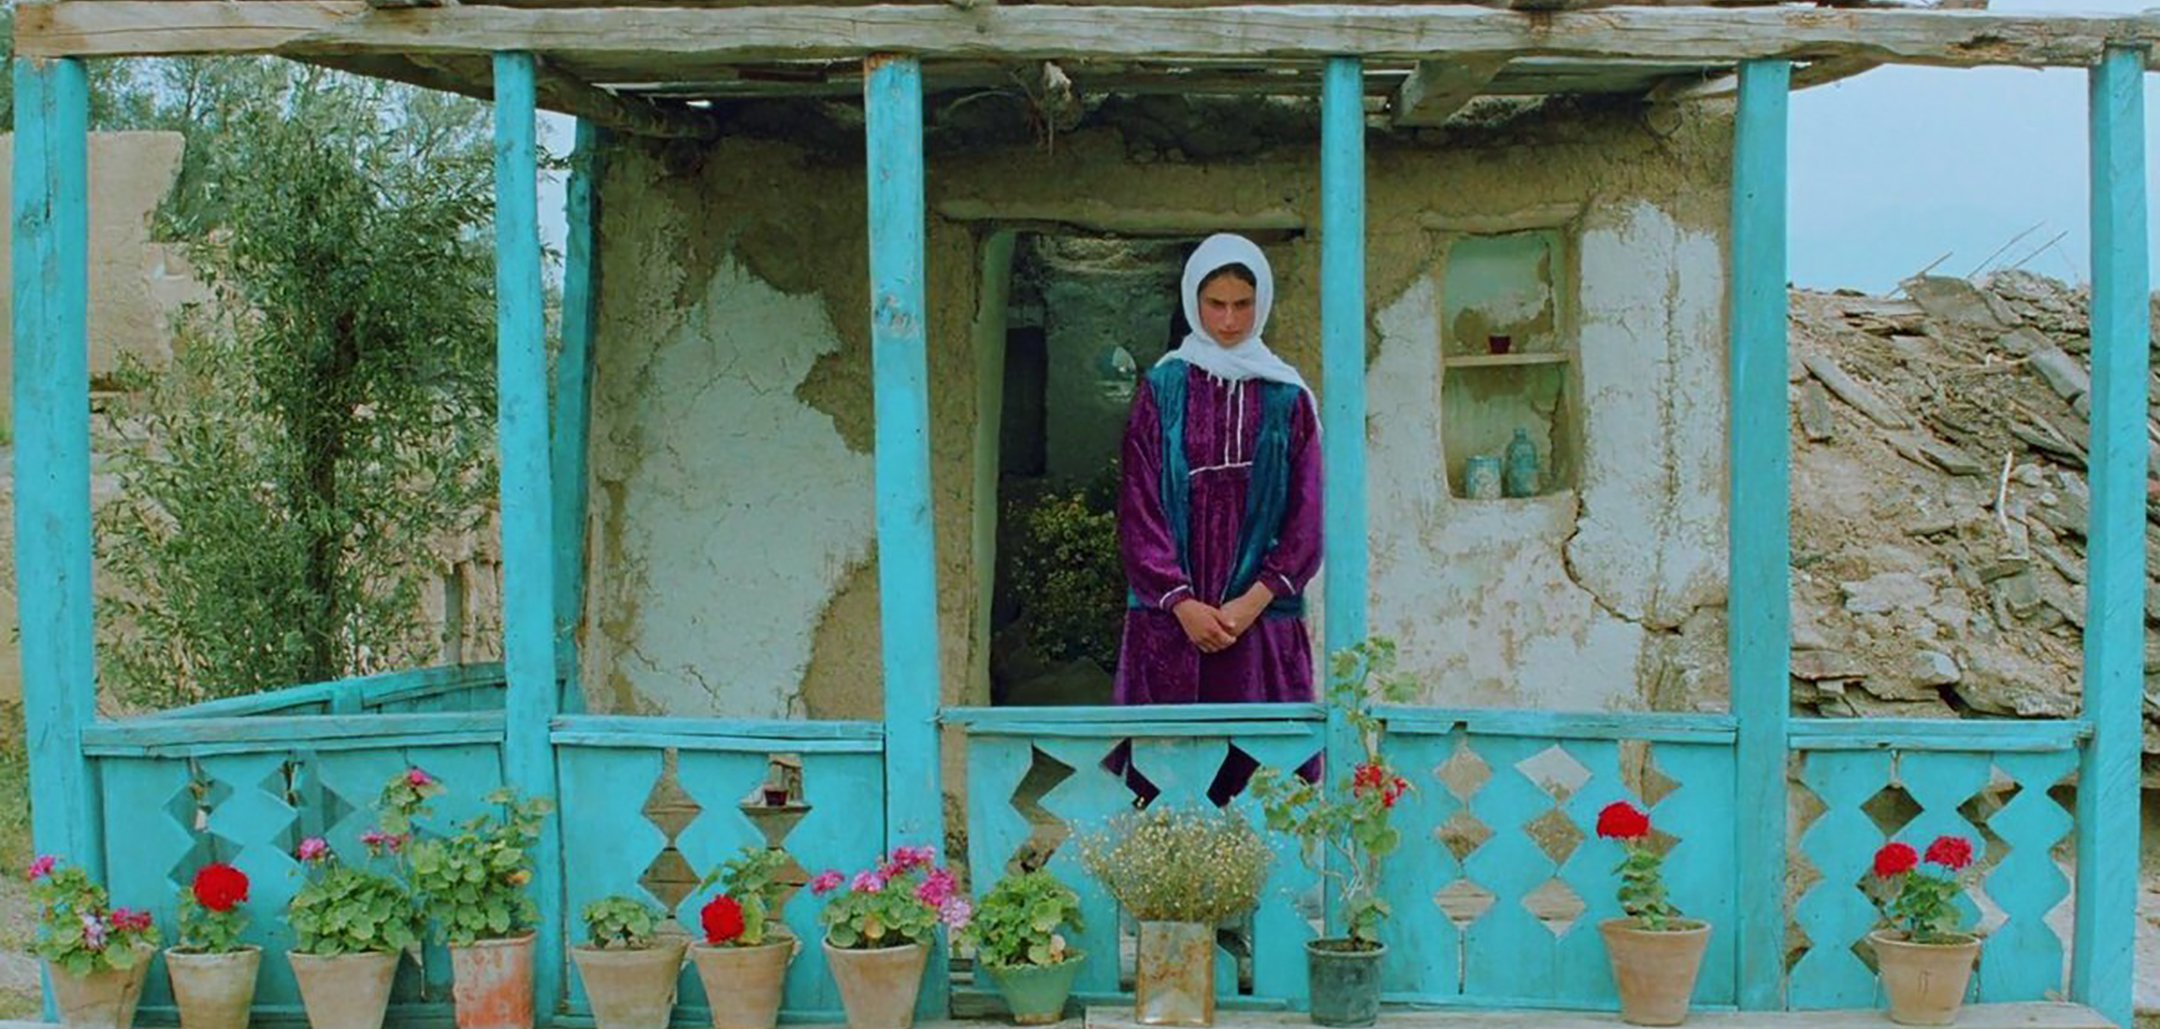 Tahereh Ladanian in 'Through The Olive Trees' (1994)